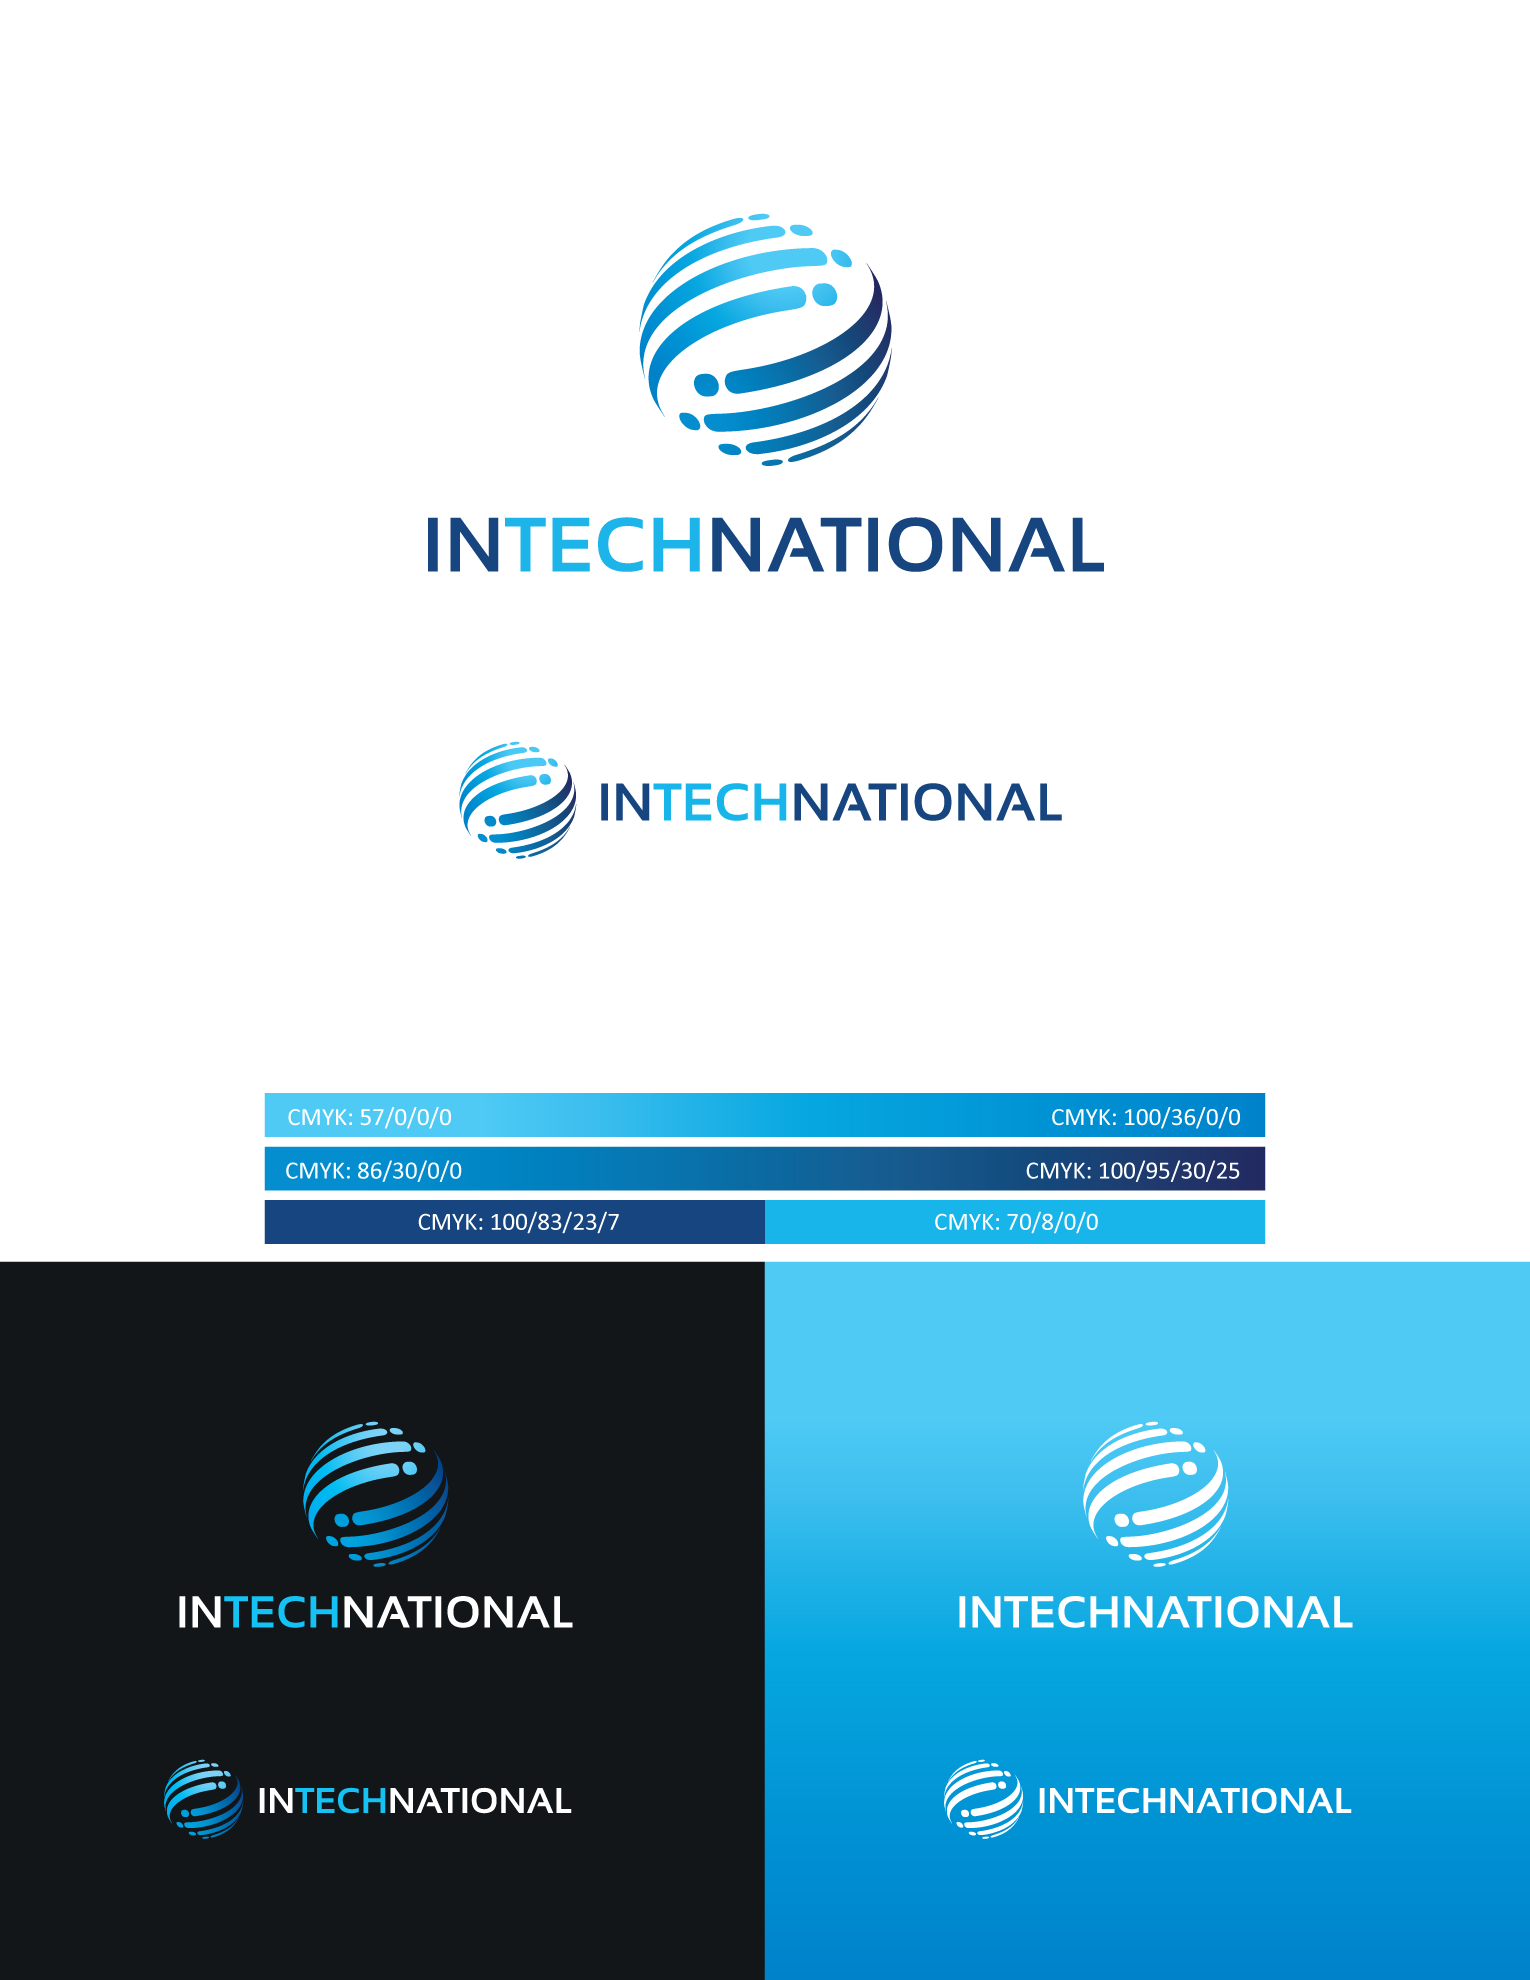 Powerful and bold desgin for tech Int´l business consulting firm!